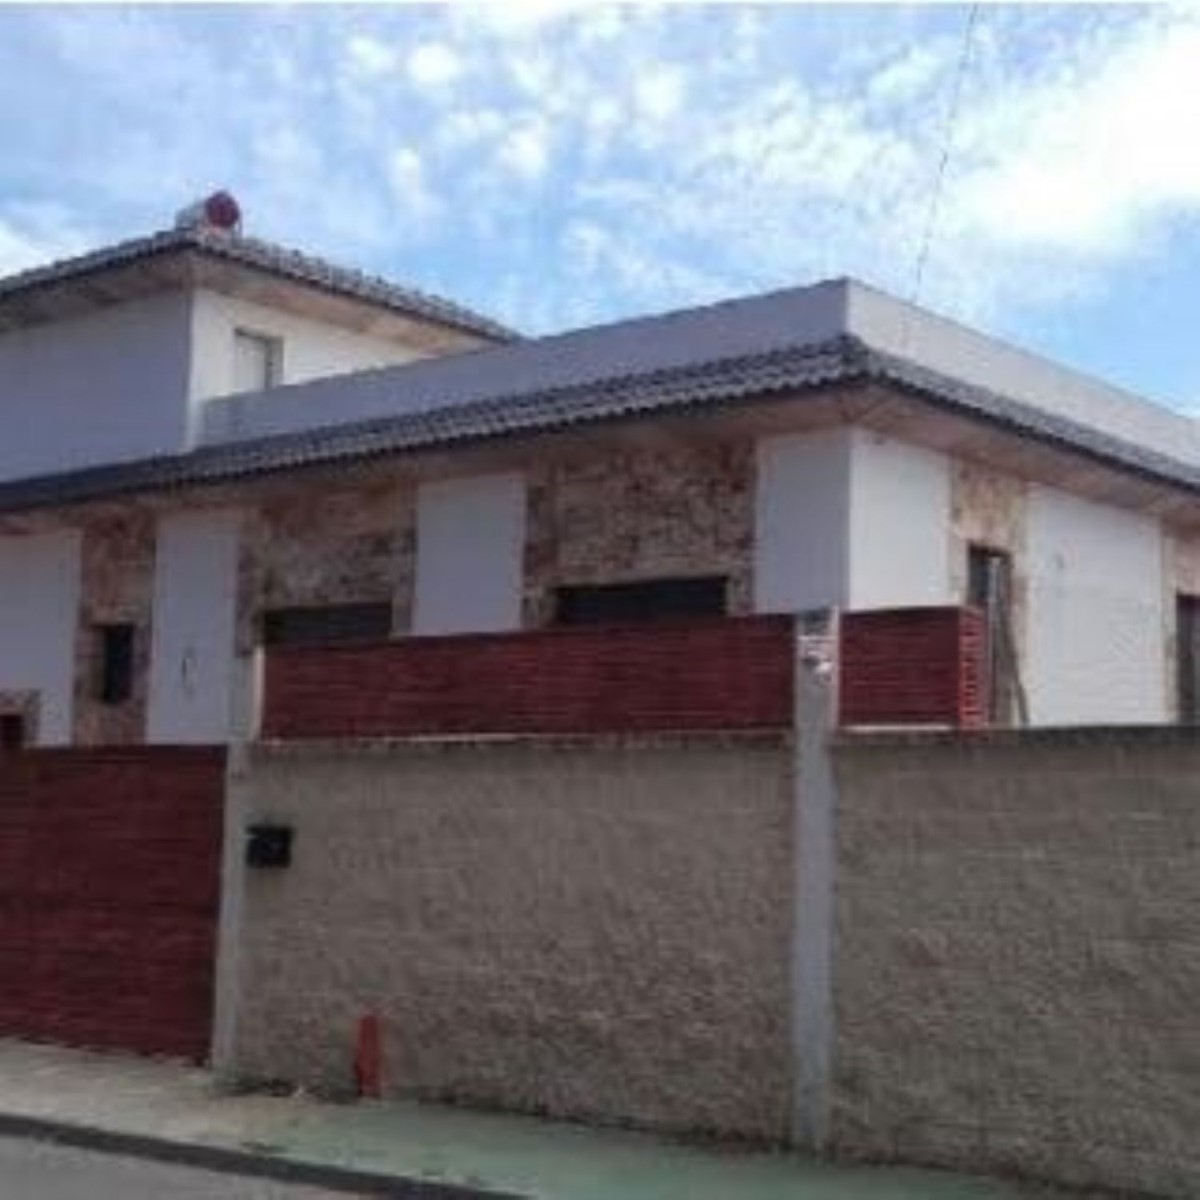 House  For Sale in Romeral, Molina de Segura